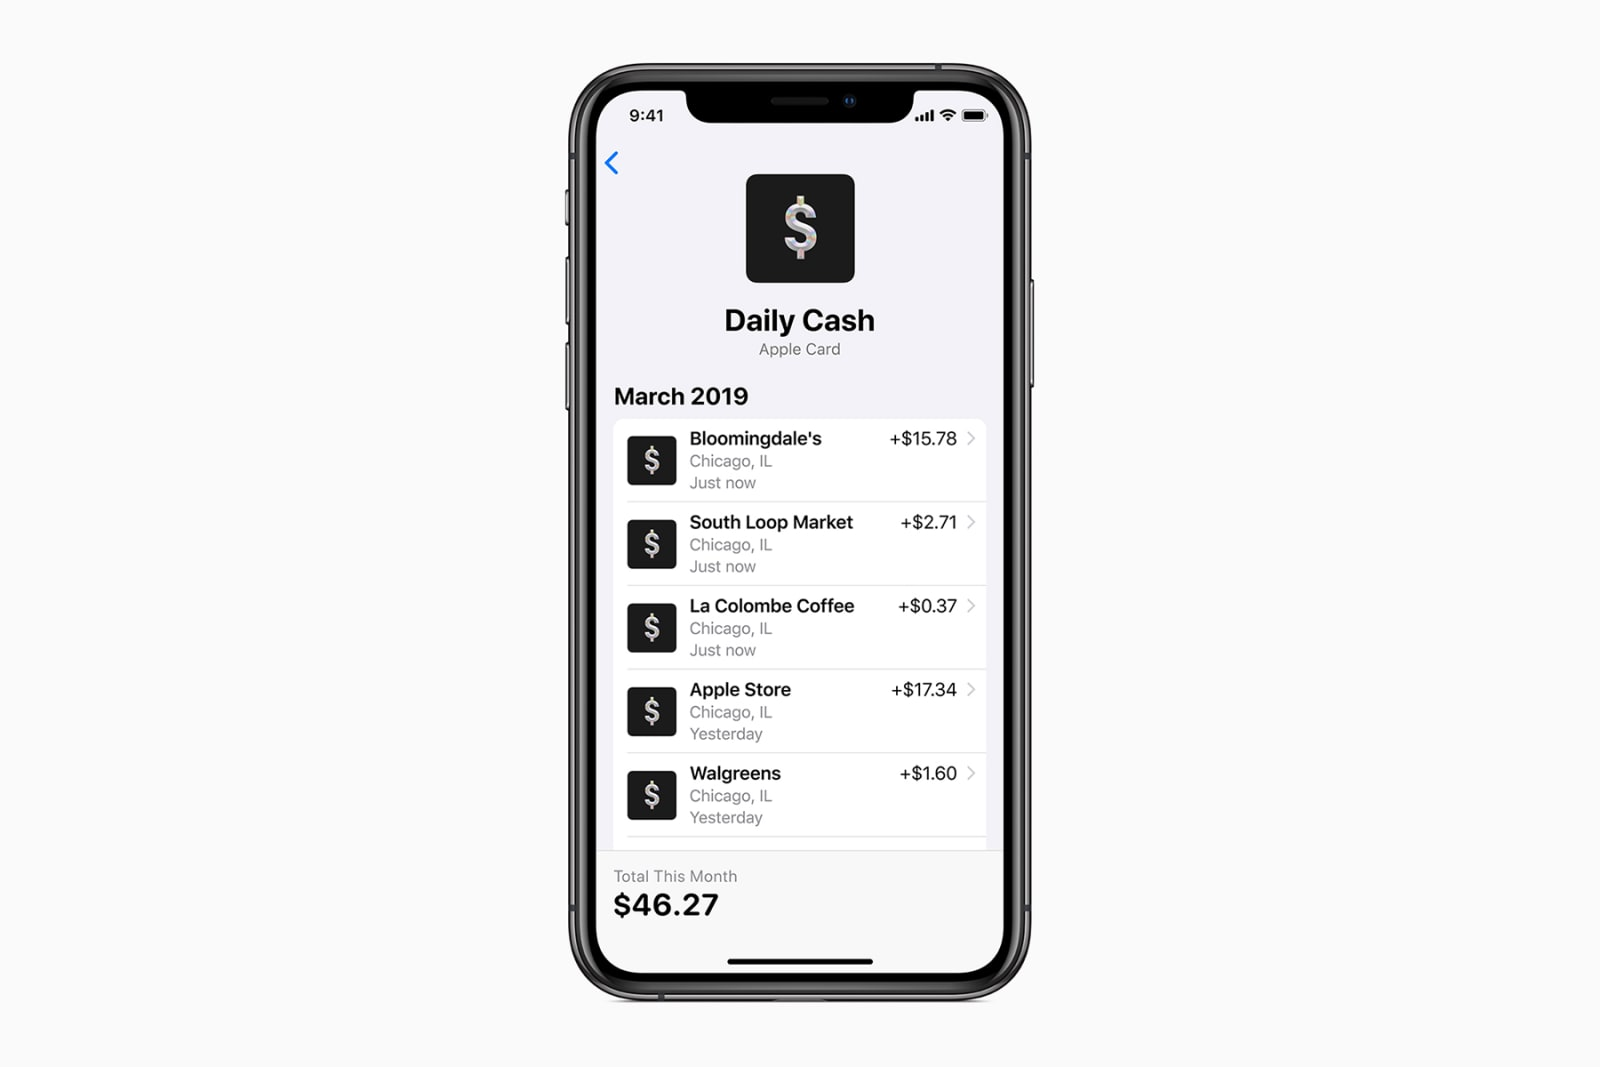 Apple Card cash